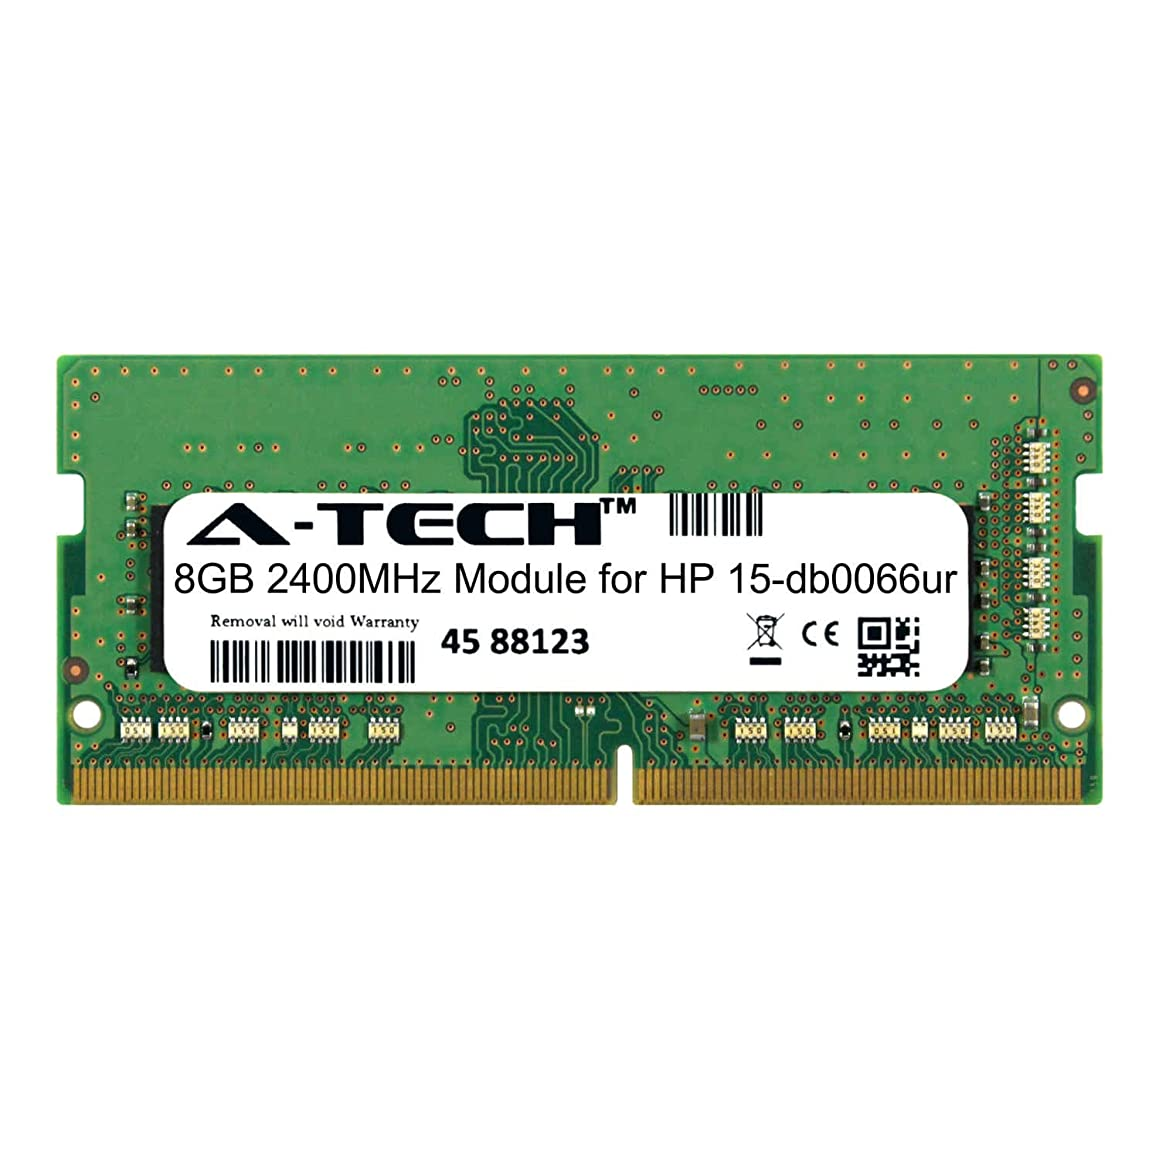 A-Tech 8GB Module for HP 15-db0066ur Laptop & Notebook Compatible DDR4 2400Mhz Memory Ram (ATMS382001A25827X1)